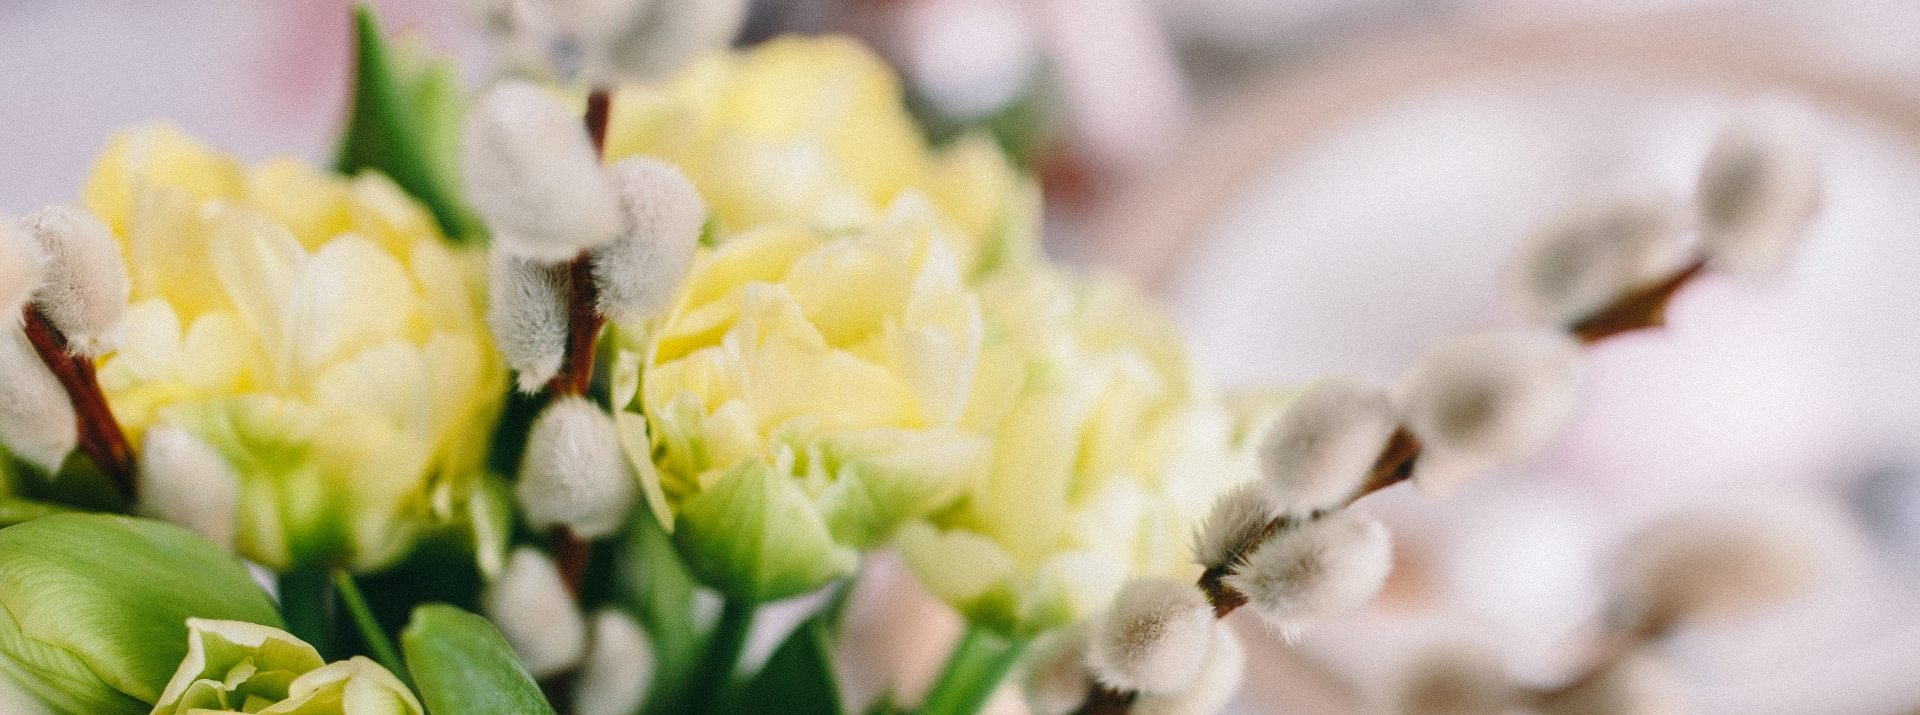 cropped-kaboompics.com_Spring-flowers-on-a-table.jpg